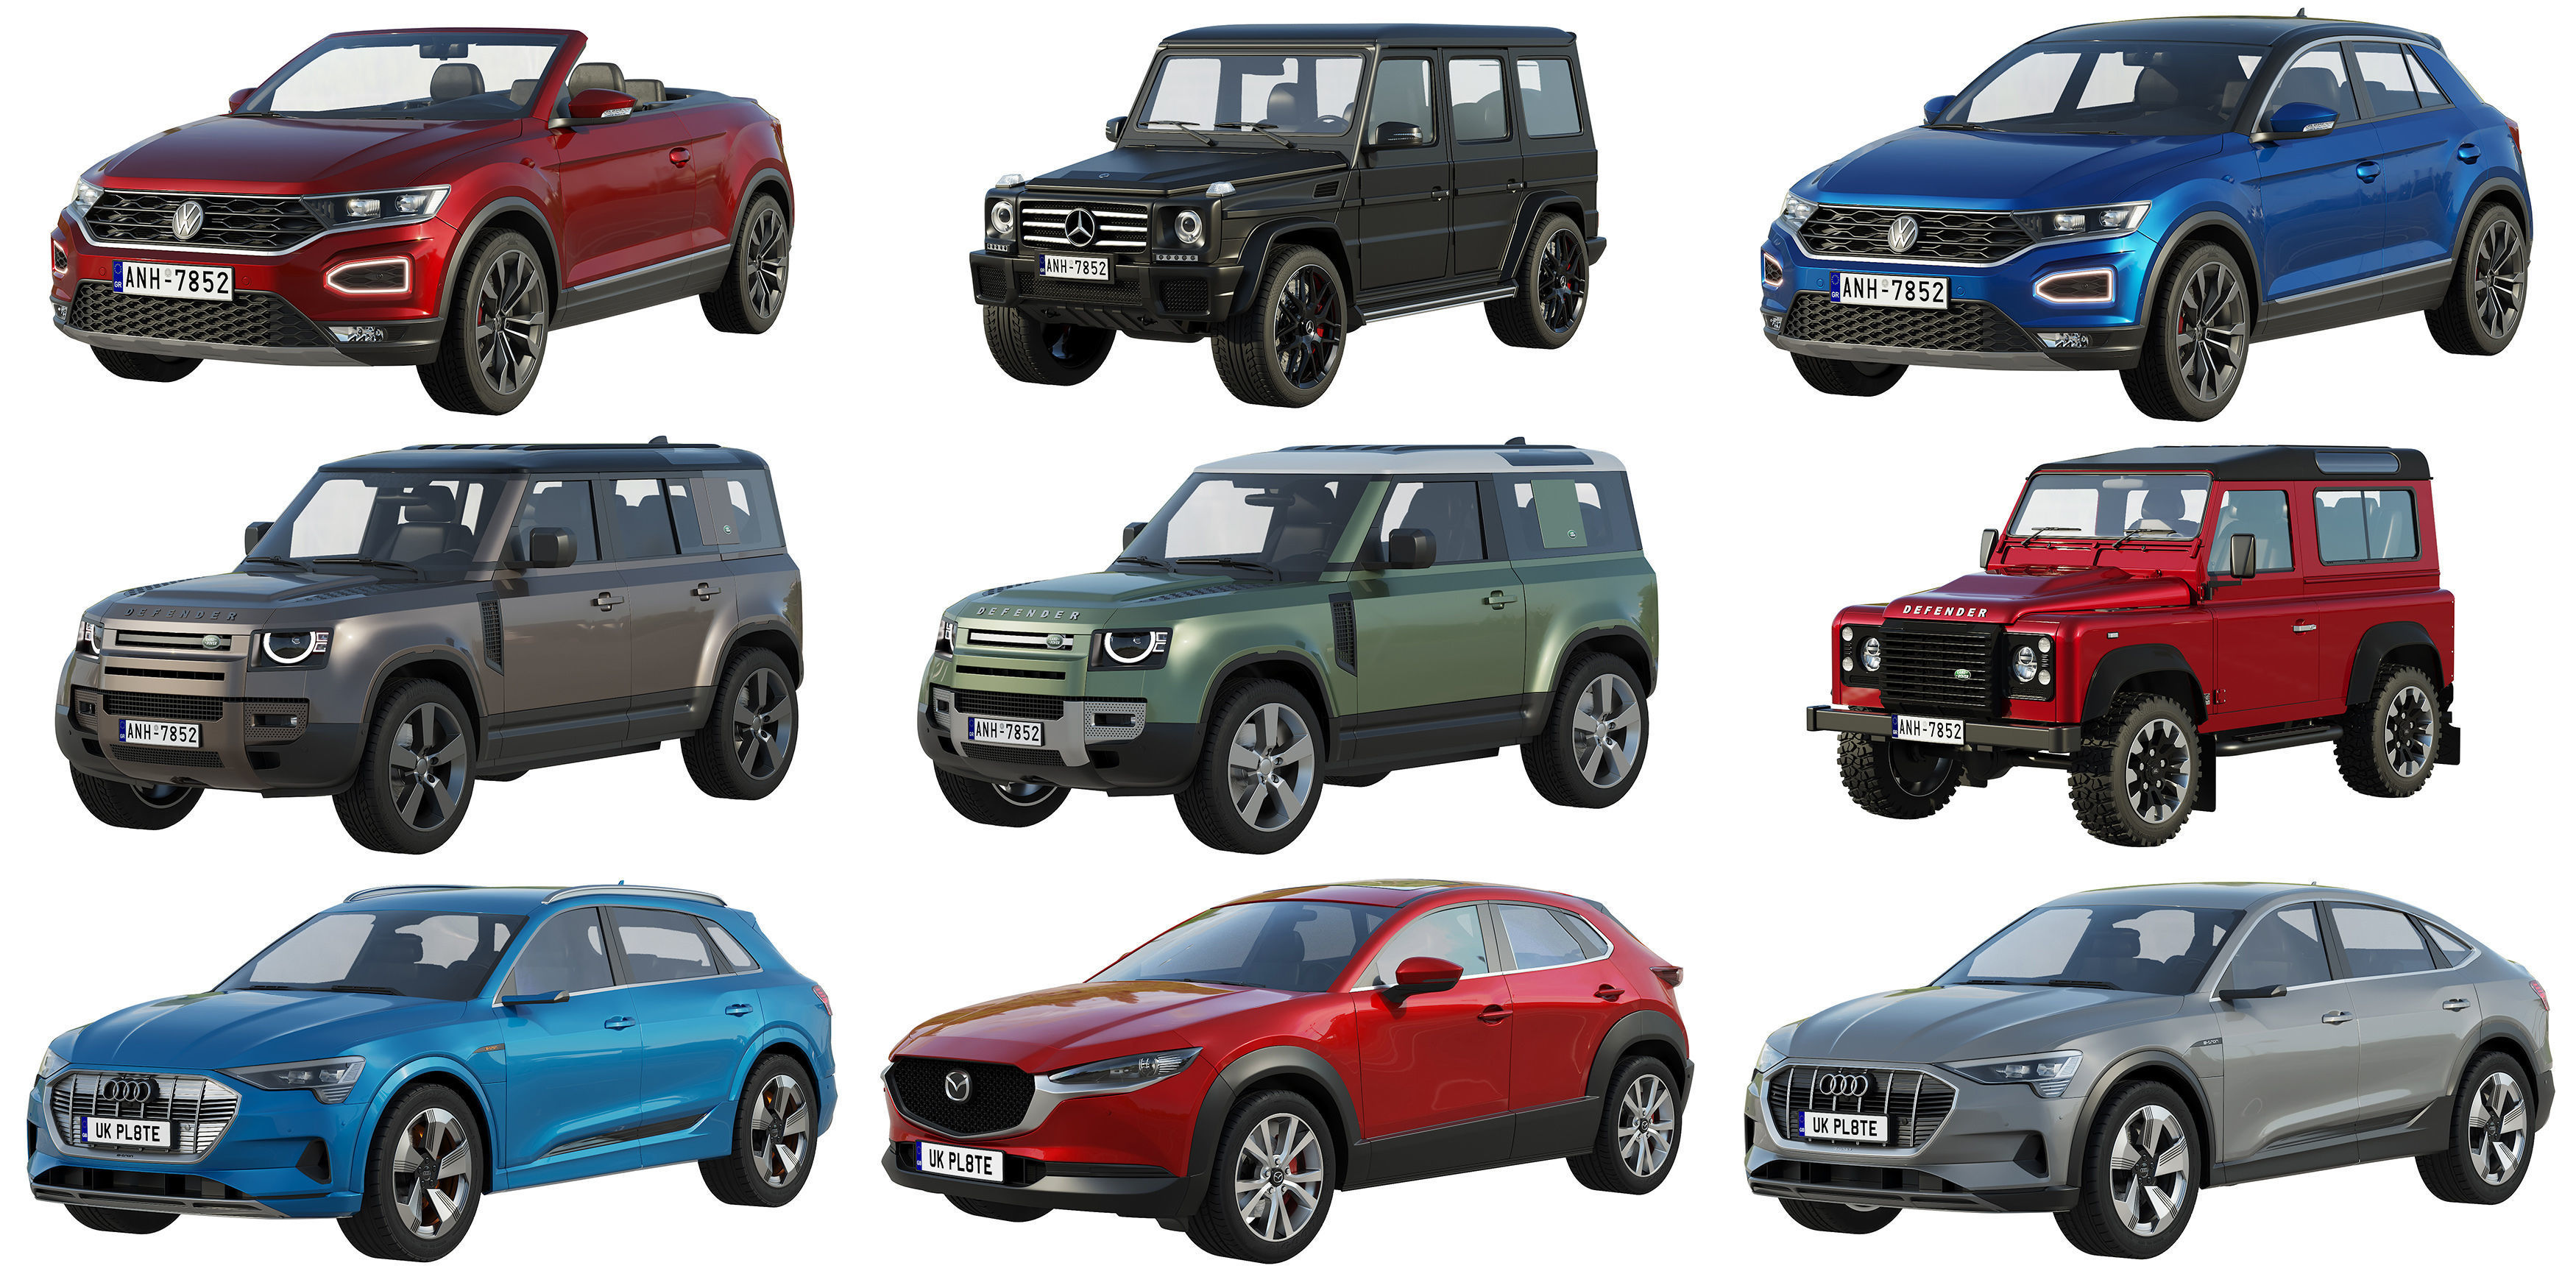 HQ SUV collection